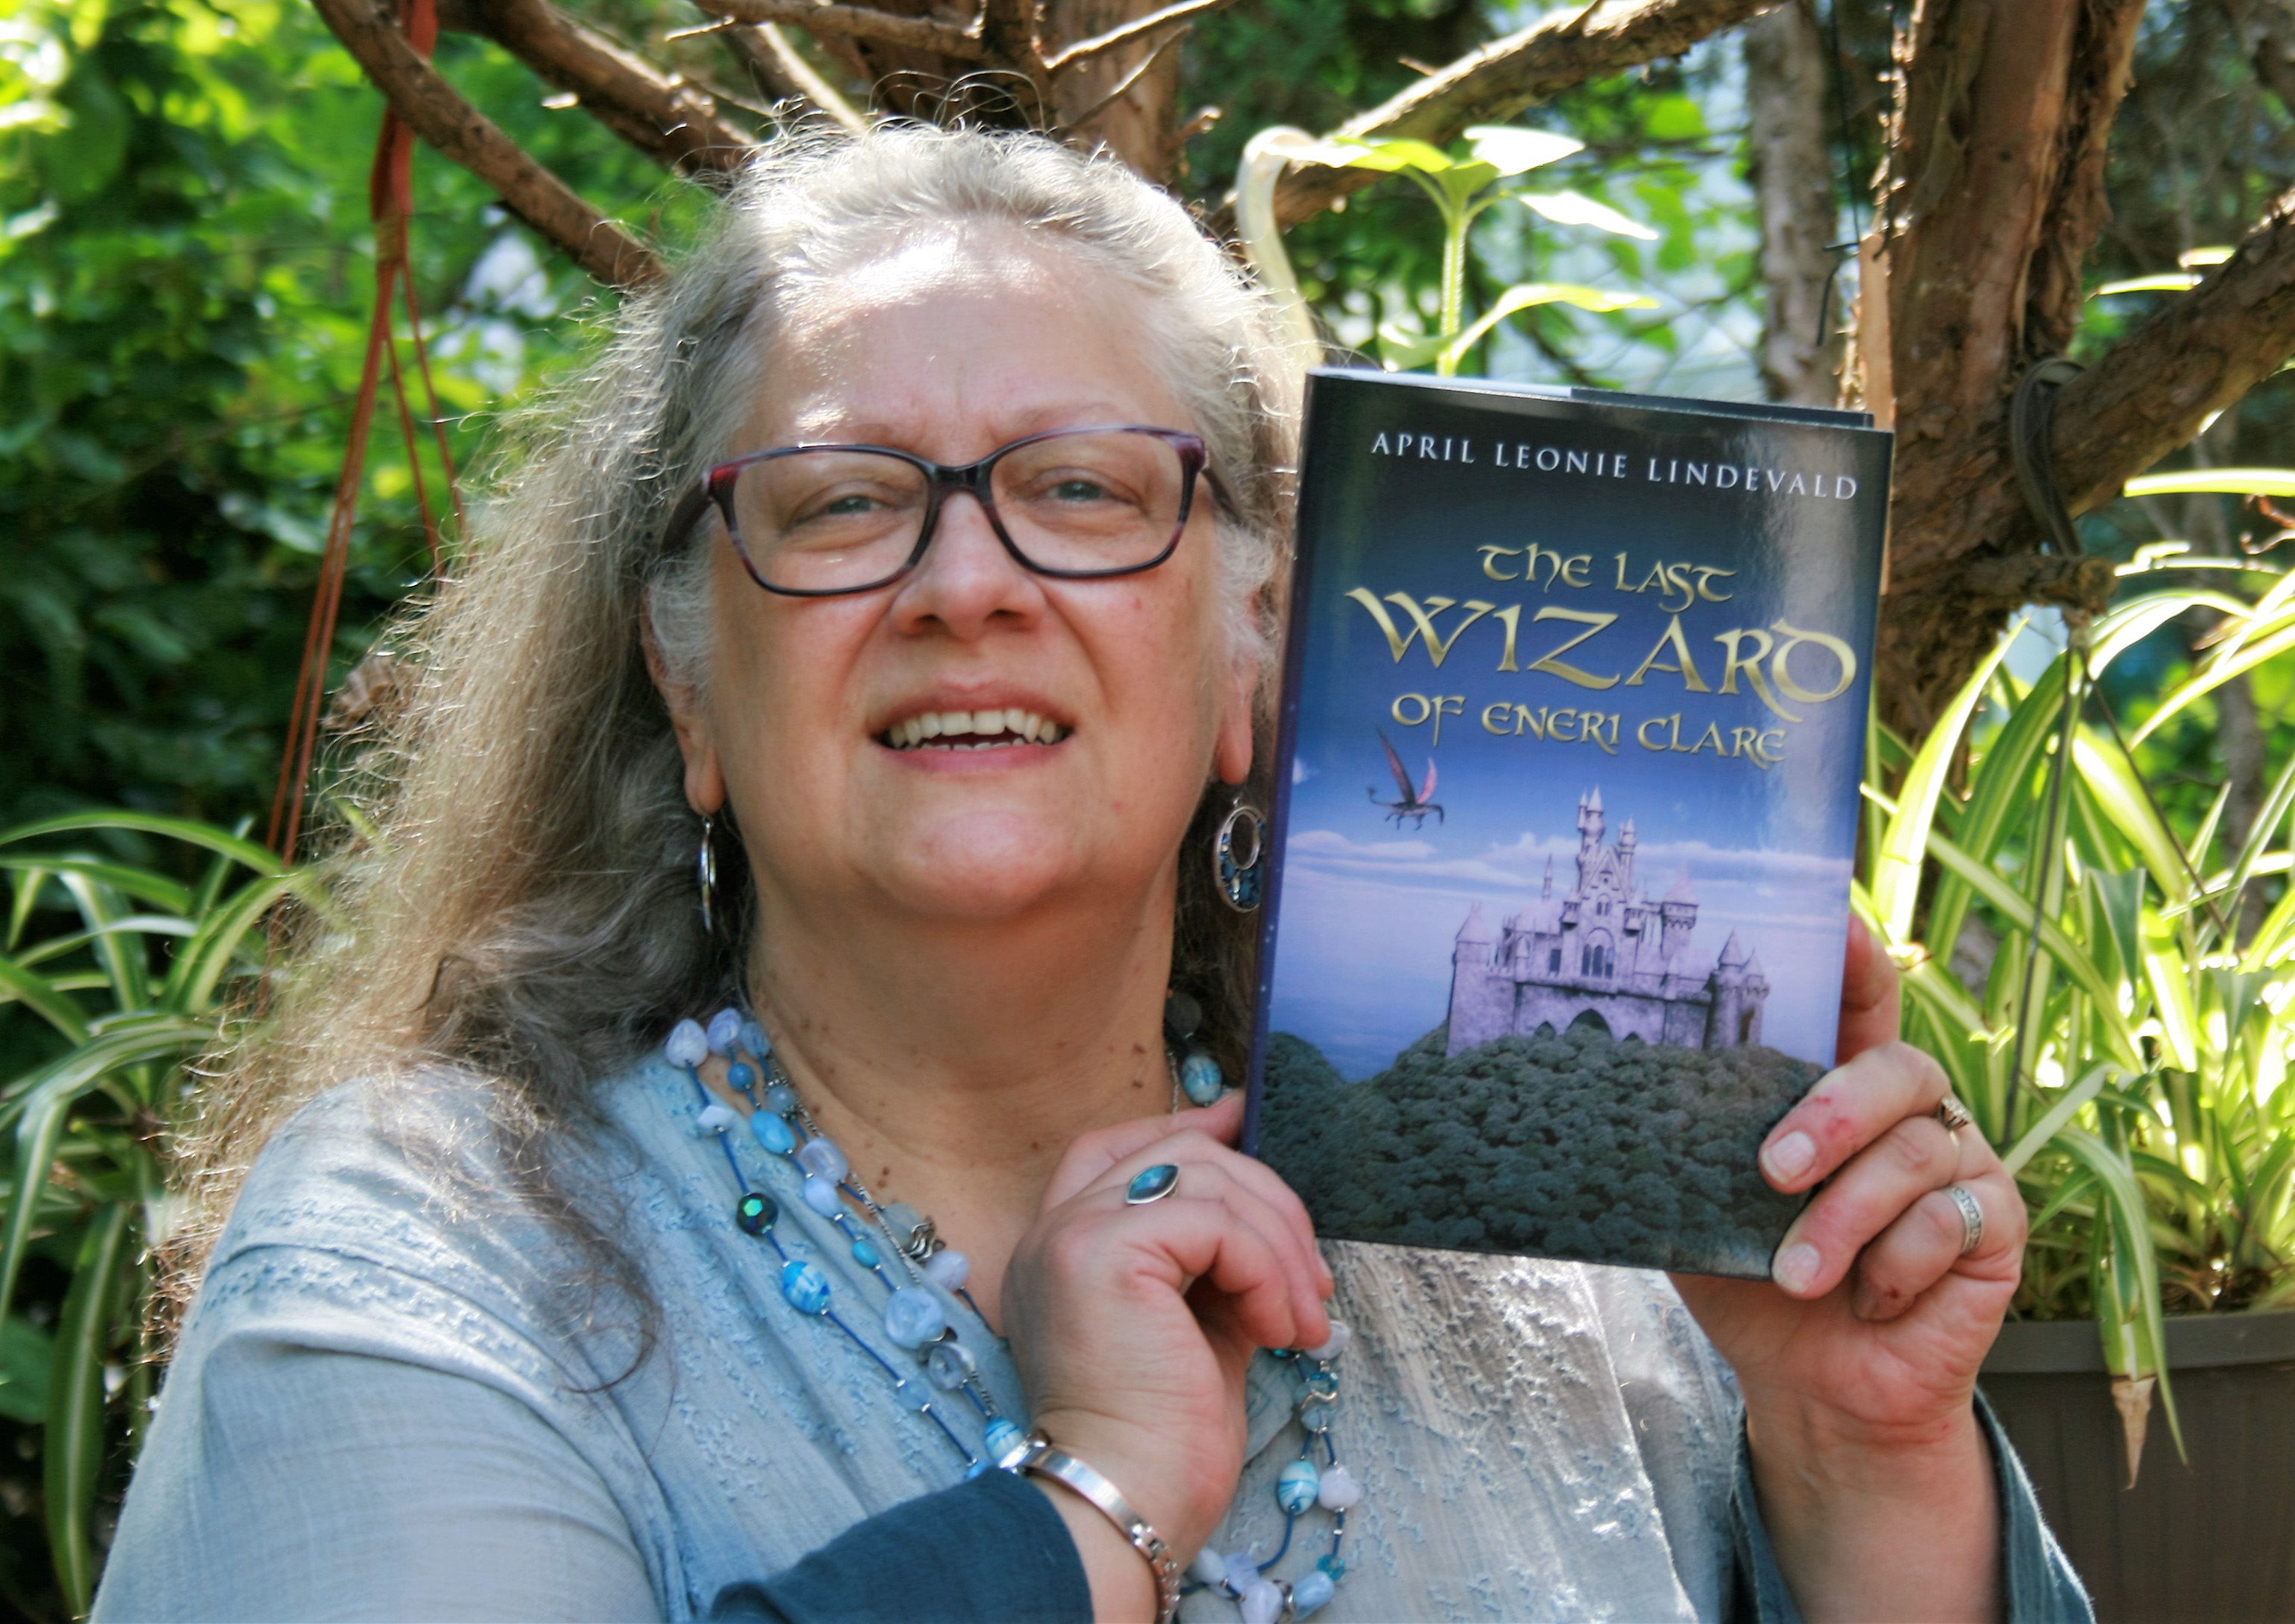 The last wizard of Enere Clare